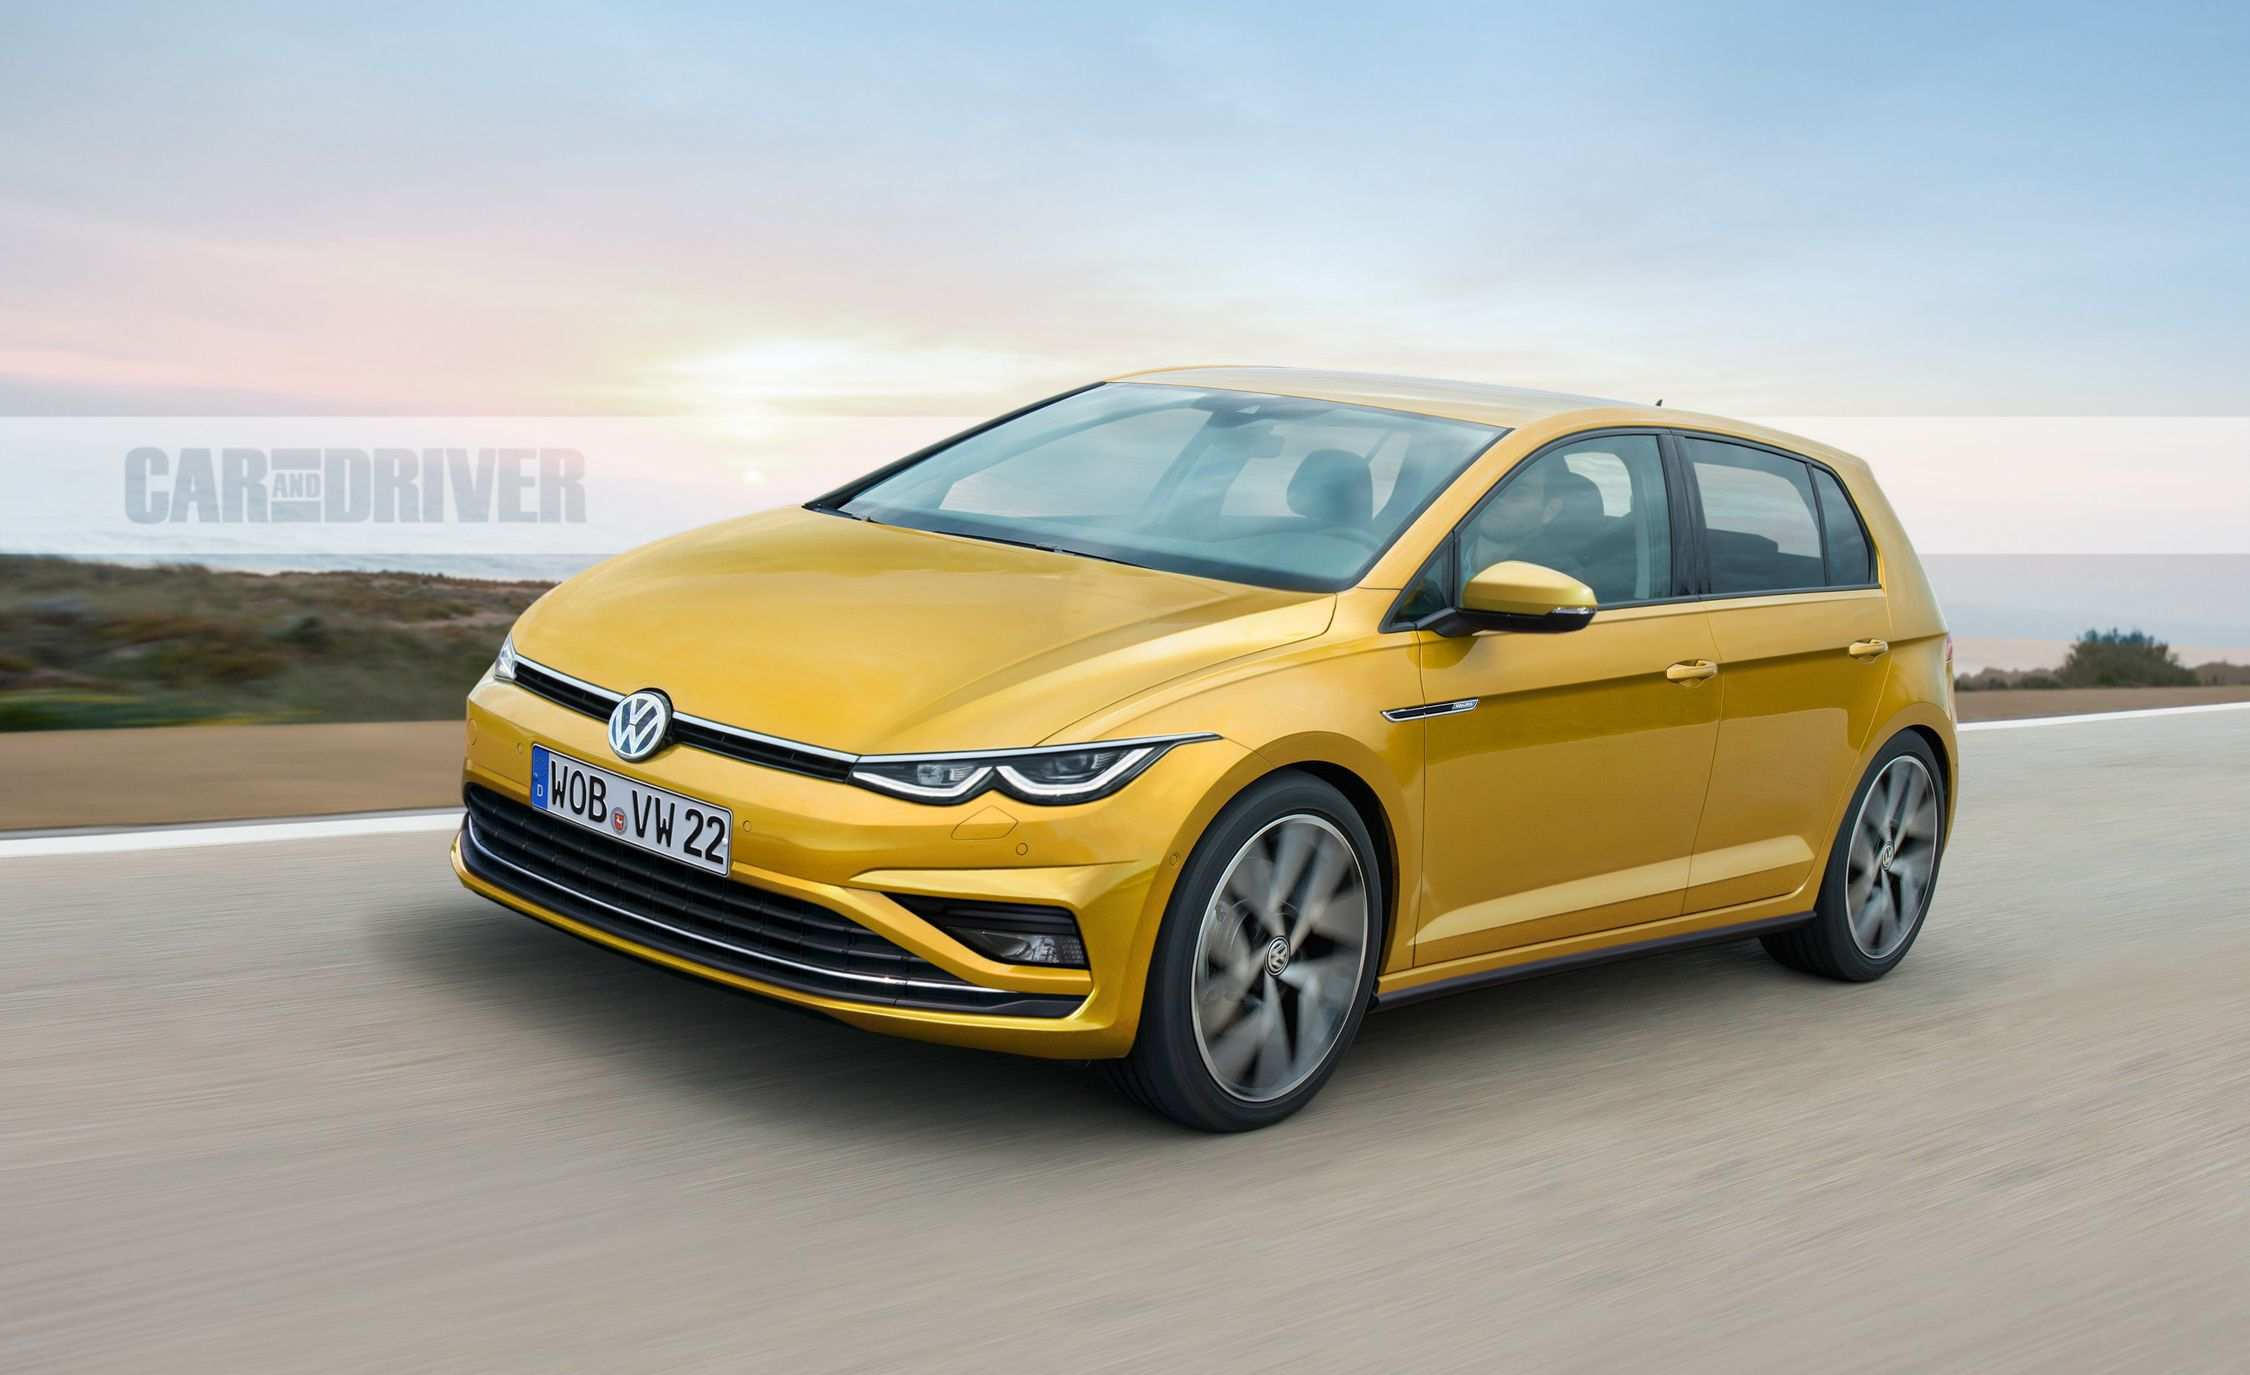 36 Concept of 2020 Vw Golf Mk8 Redesign for 2020 Vw Golf Mk8